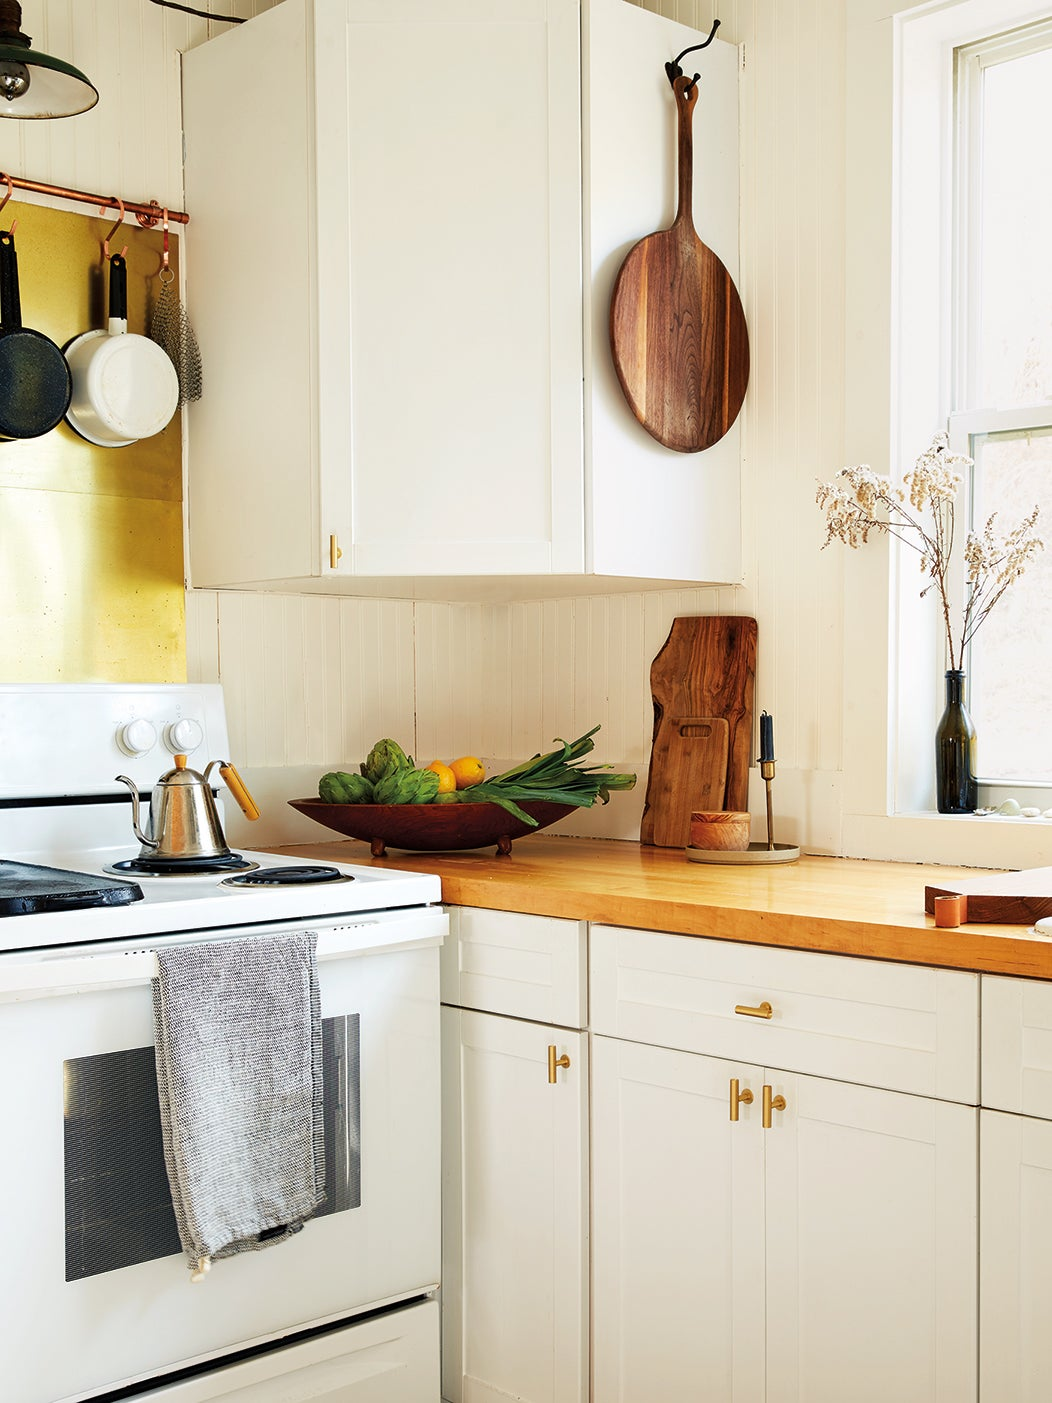 When It Comes to Upper Corner Kitchen Cabinet Organization, a Pro Swears by This Tool